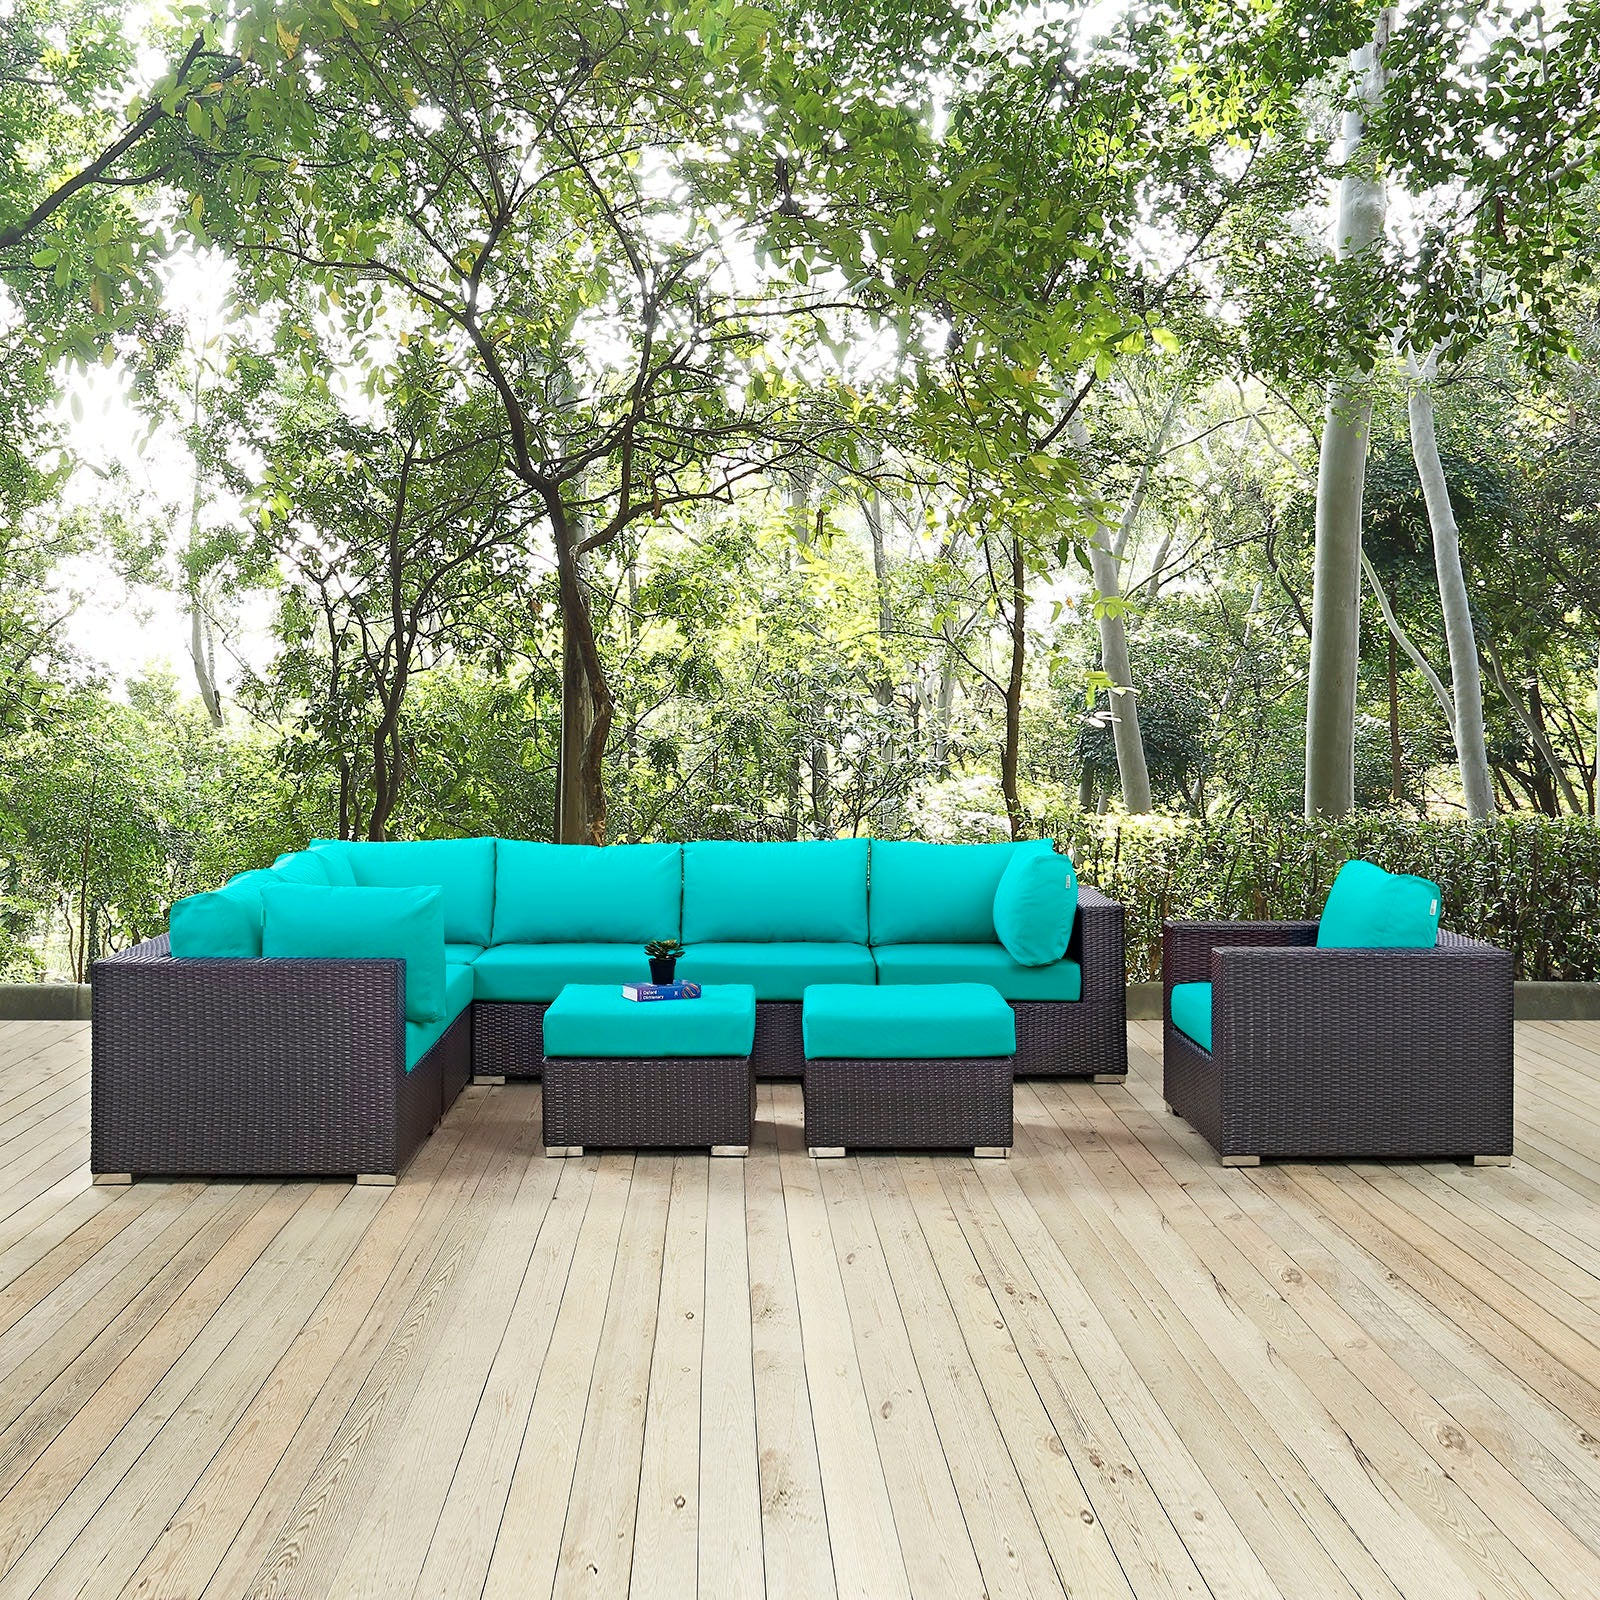 Convene 9 Piece Outdoor Patio Sectional Set - Espresso Turquoise